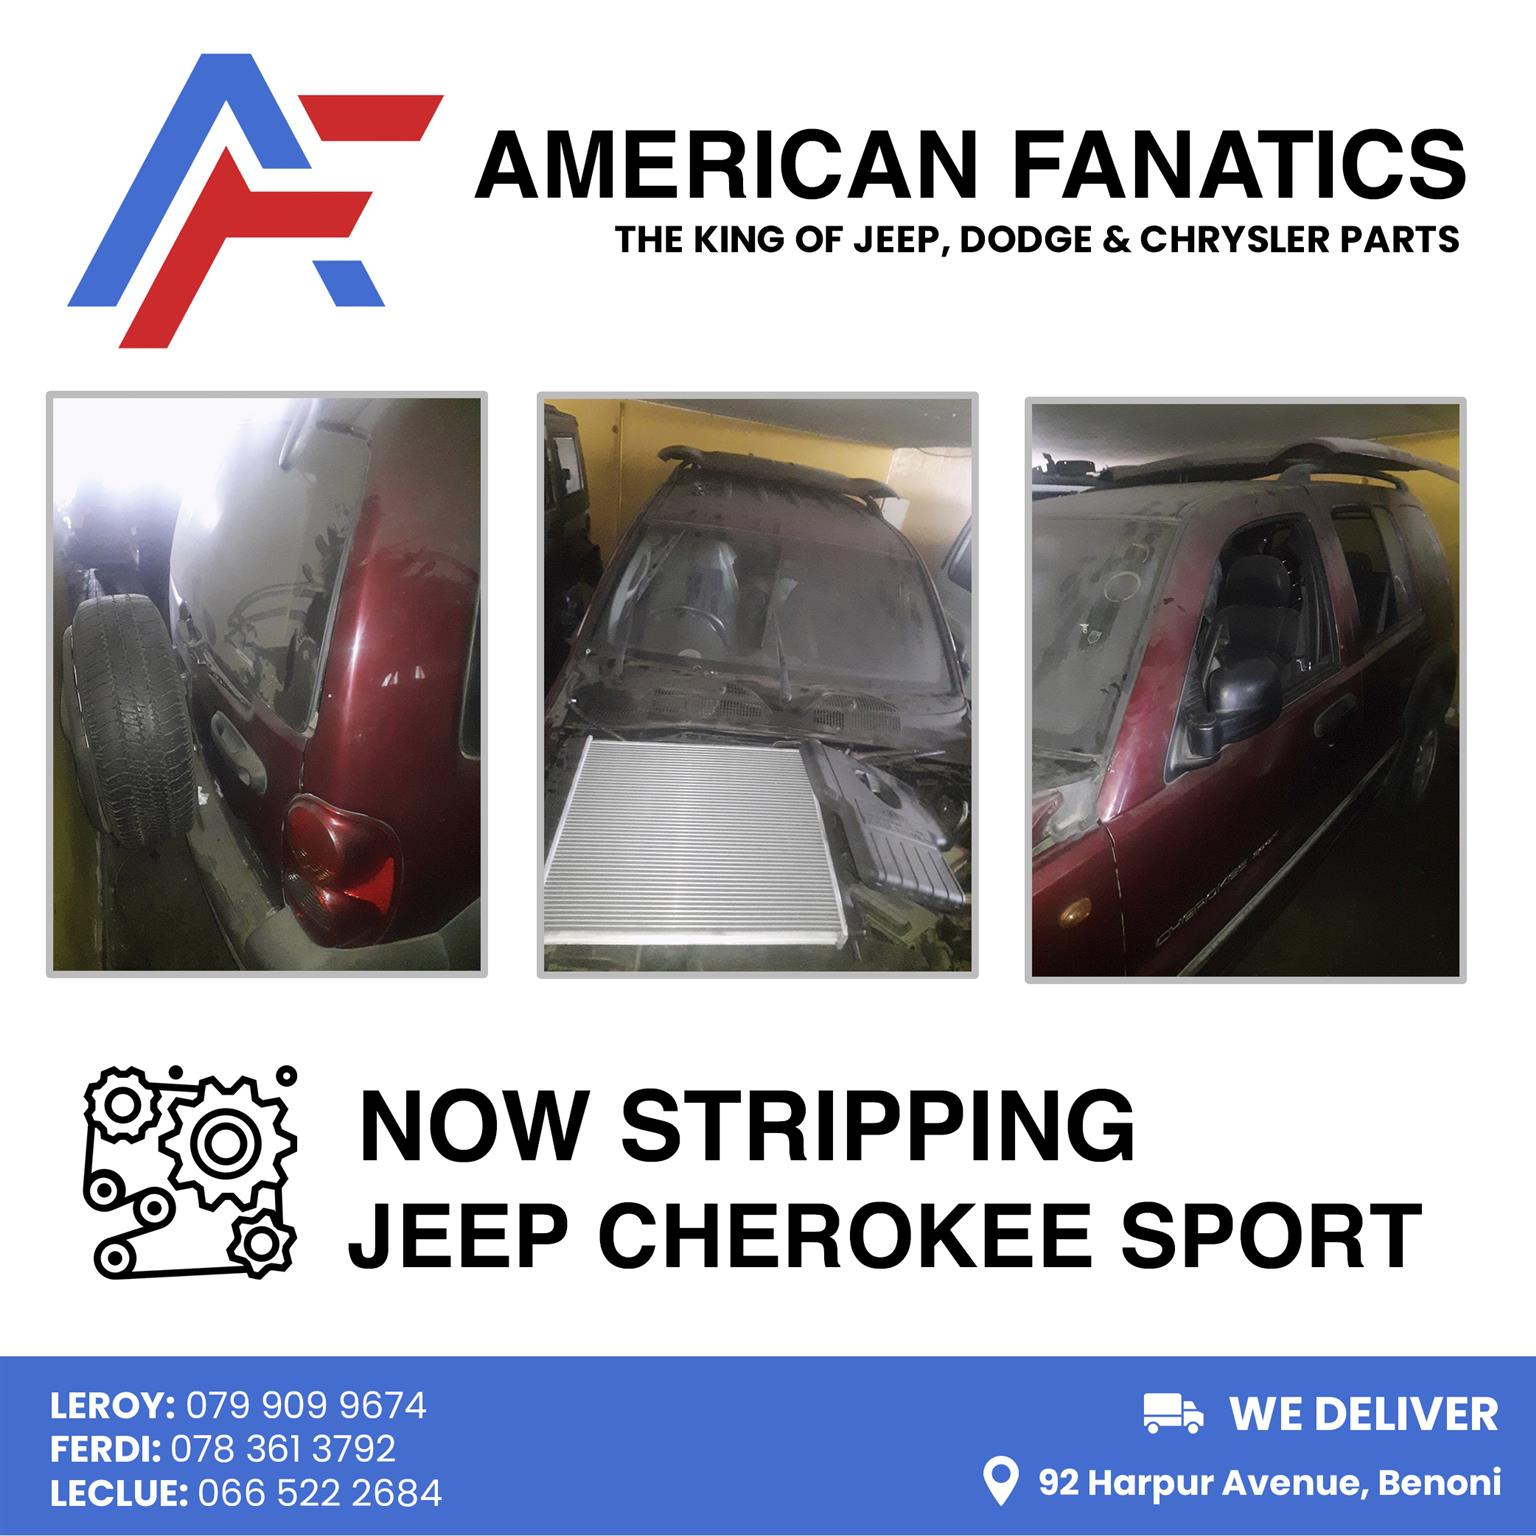 Cars for Stripping Jeep